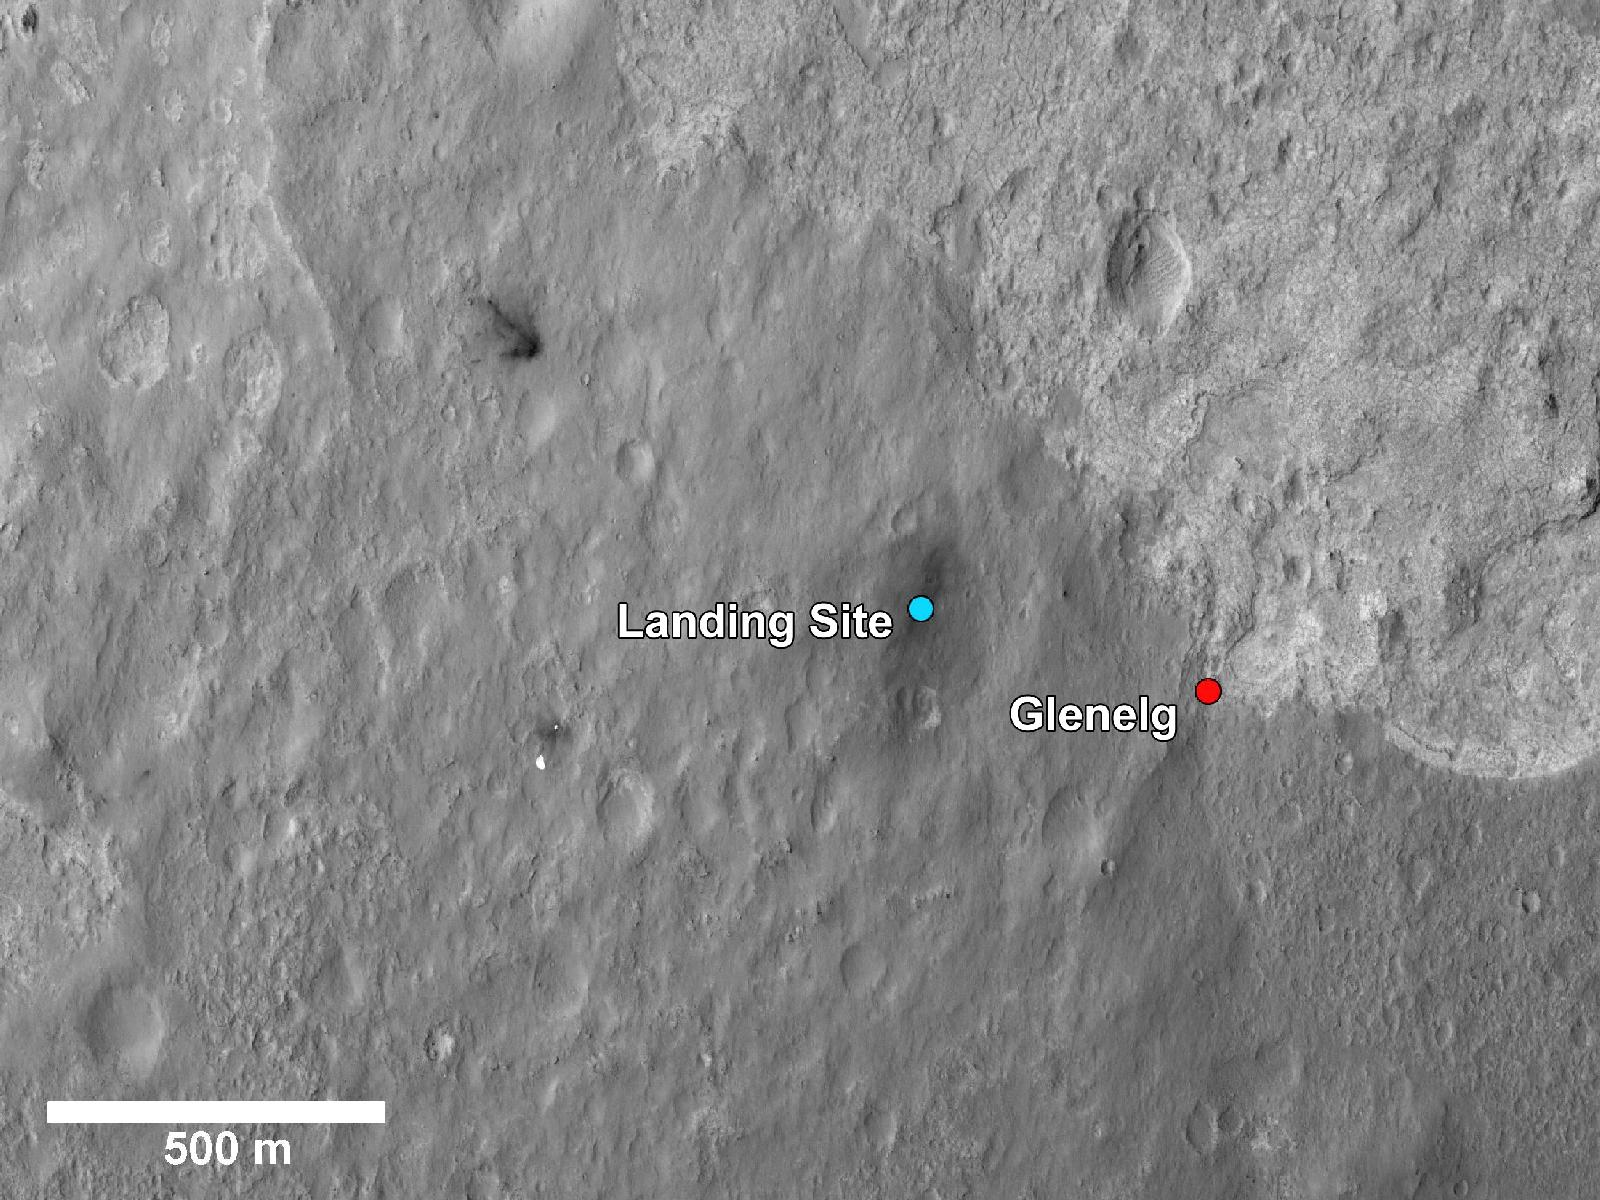 Glenelg Intrigues Mars Rover Curiosity